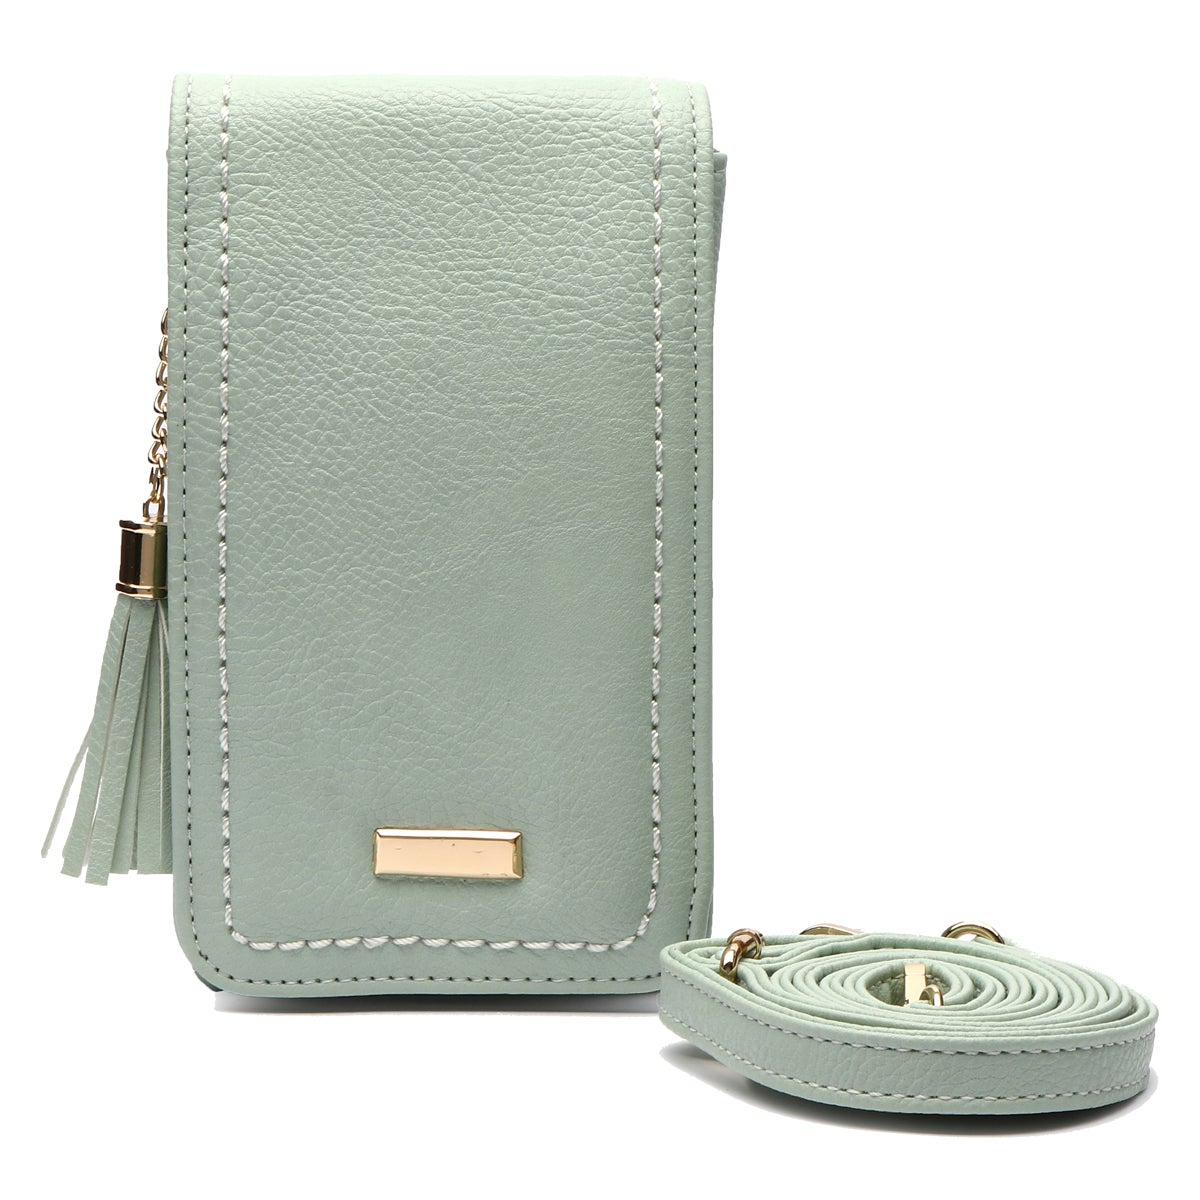 Image of Cell Crossbody